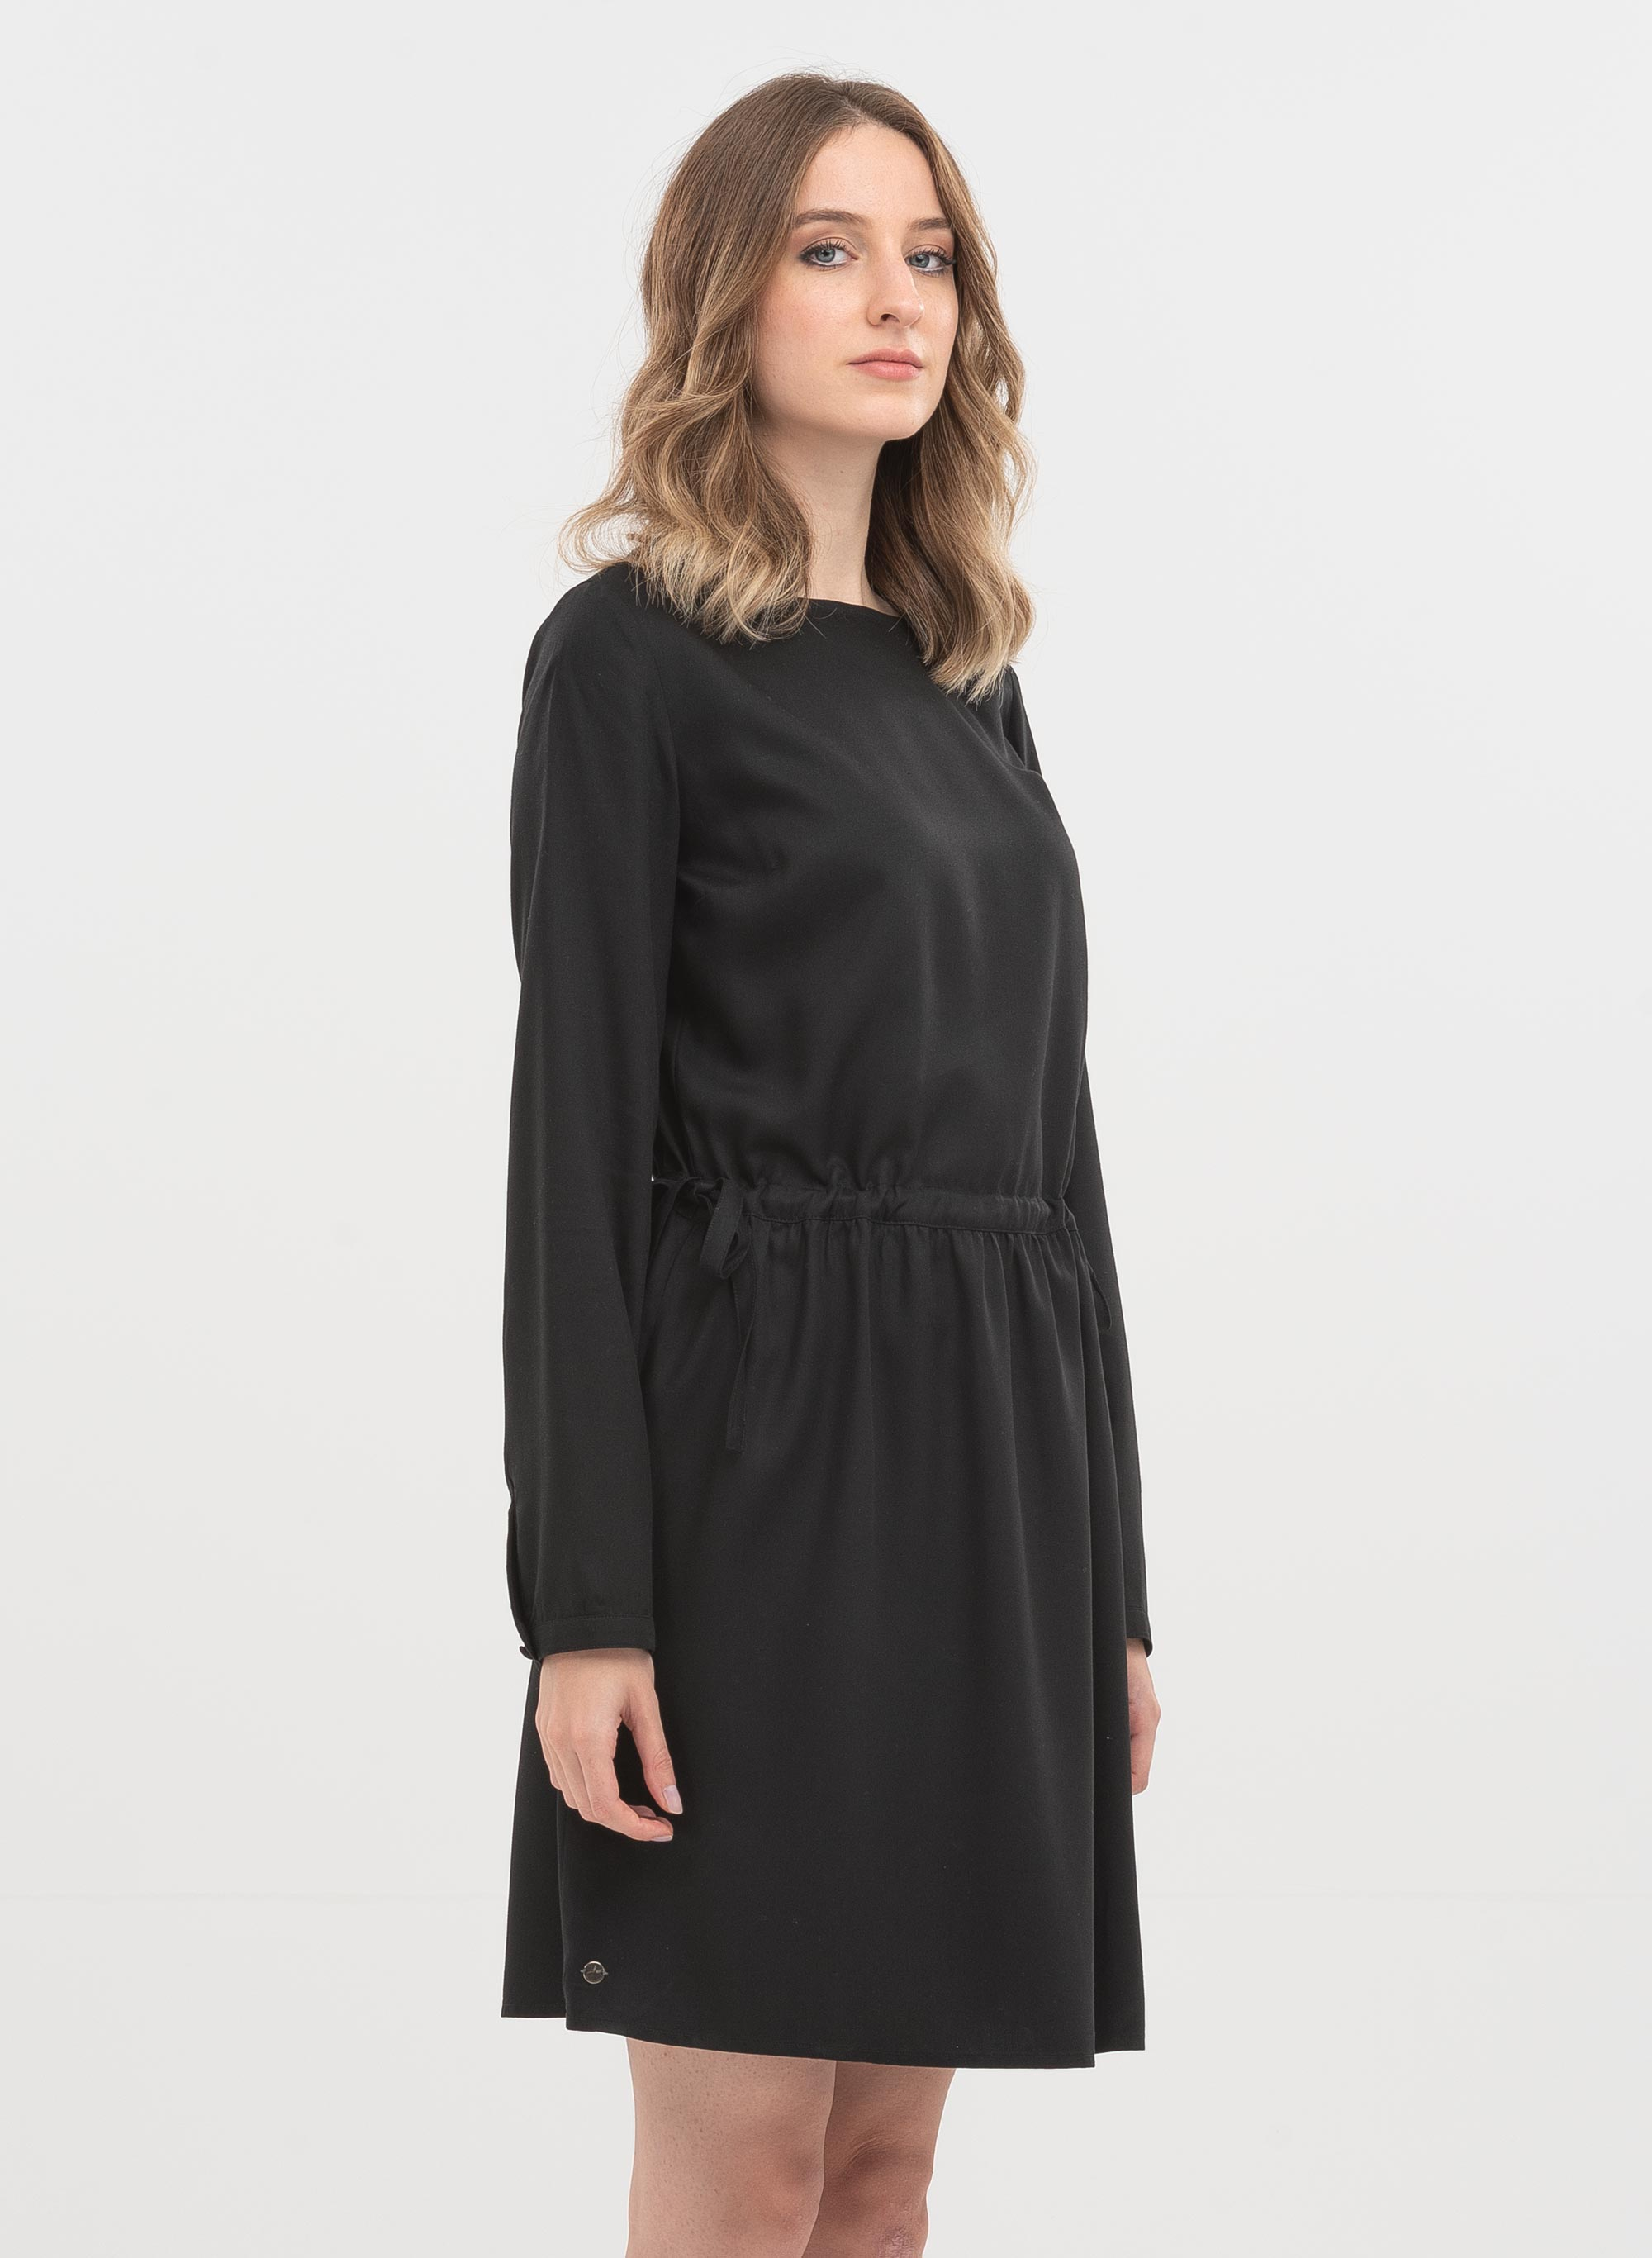 langarm-kleid aus tencel - black